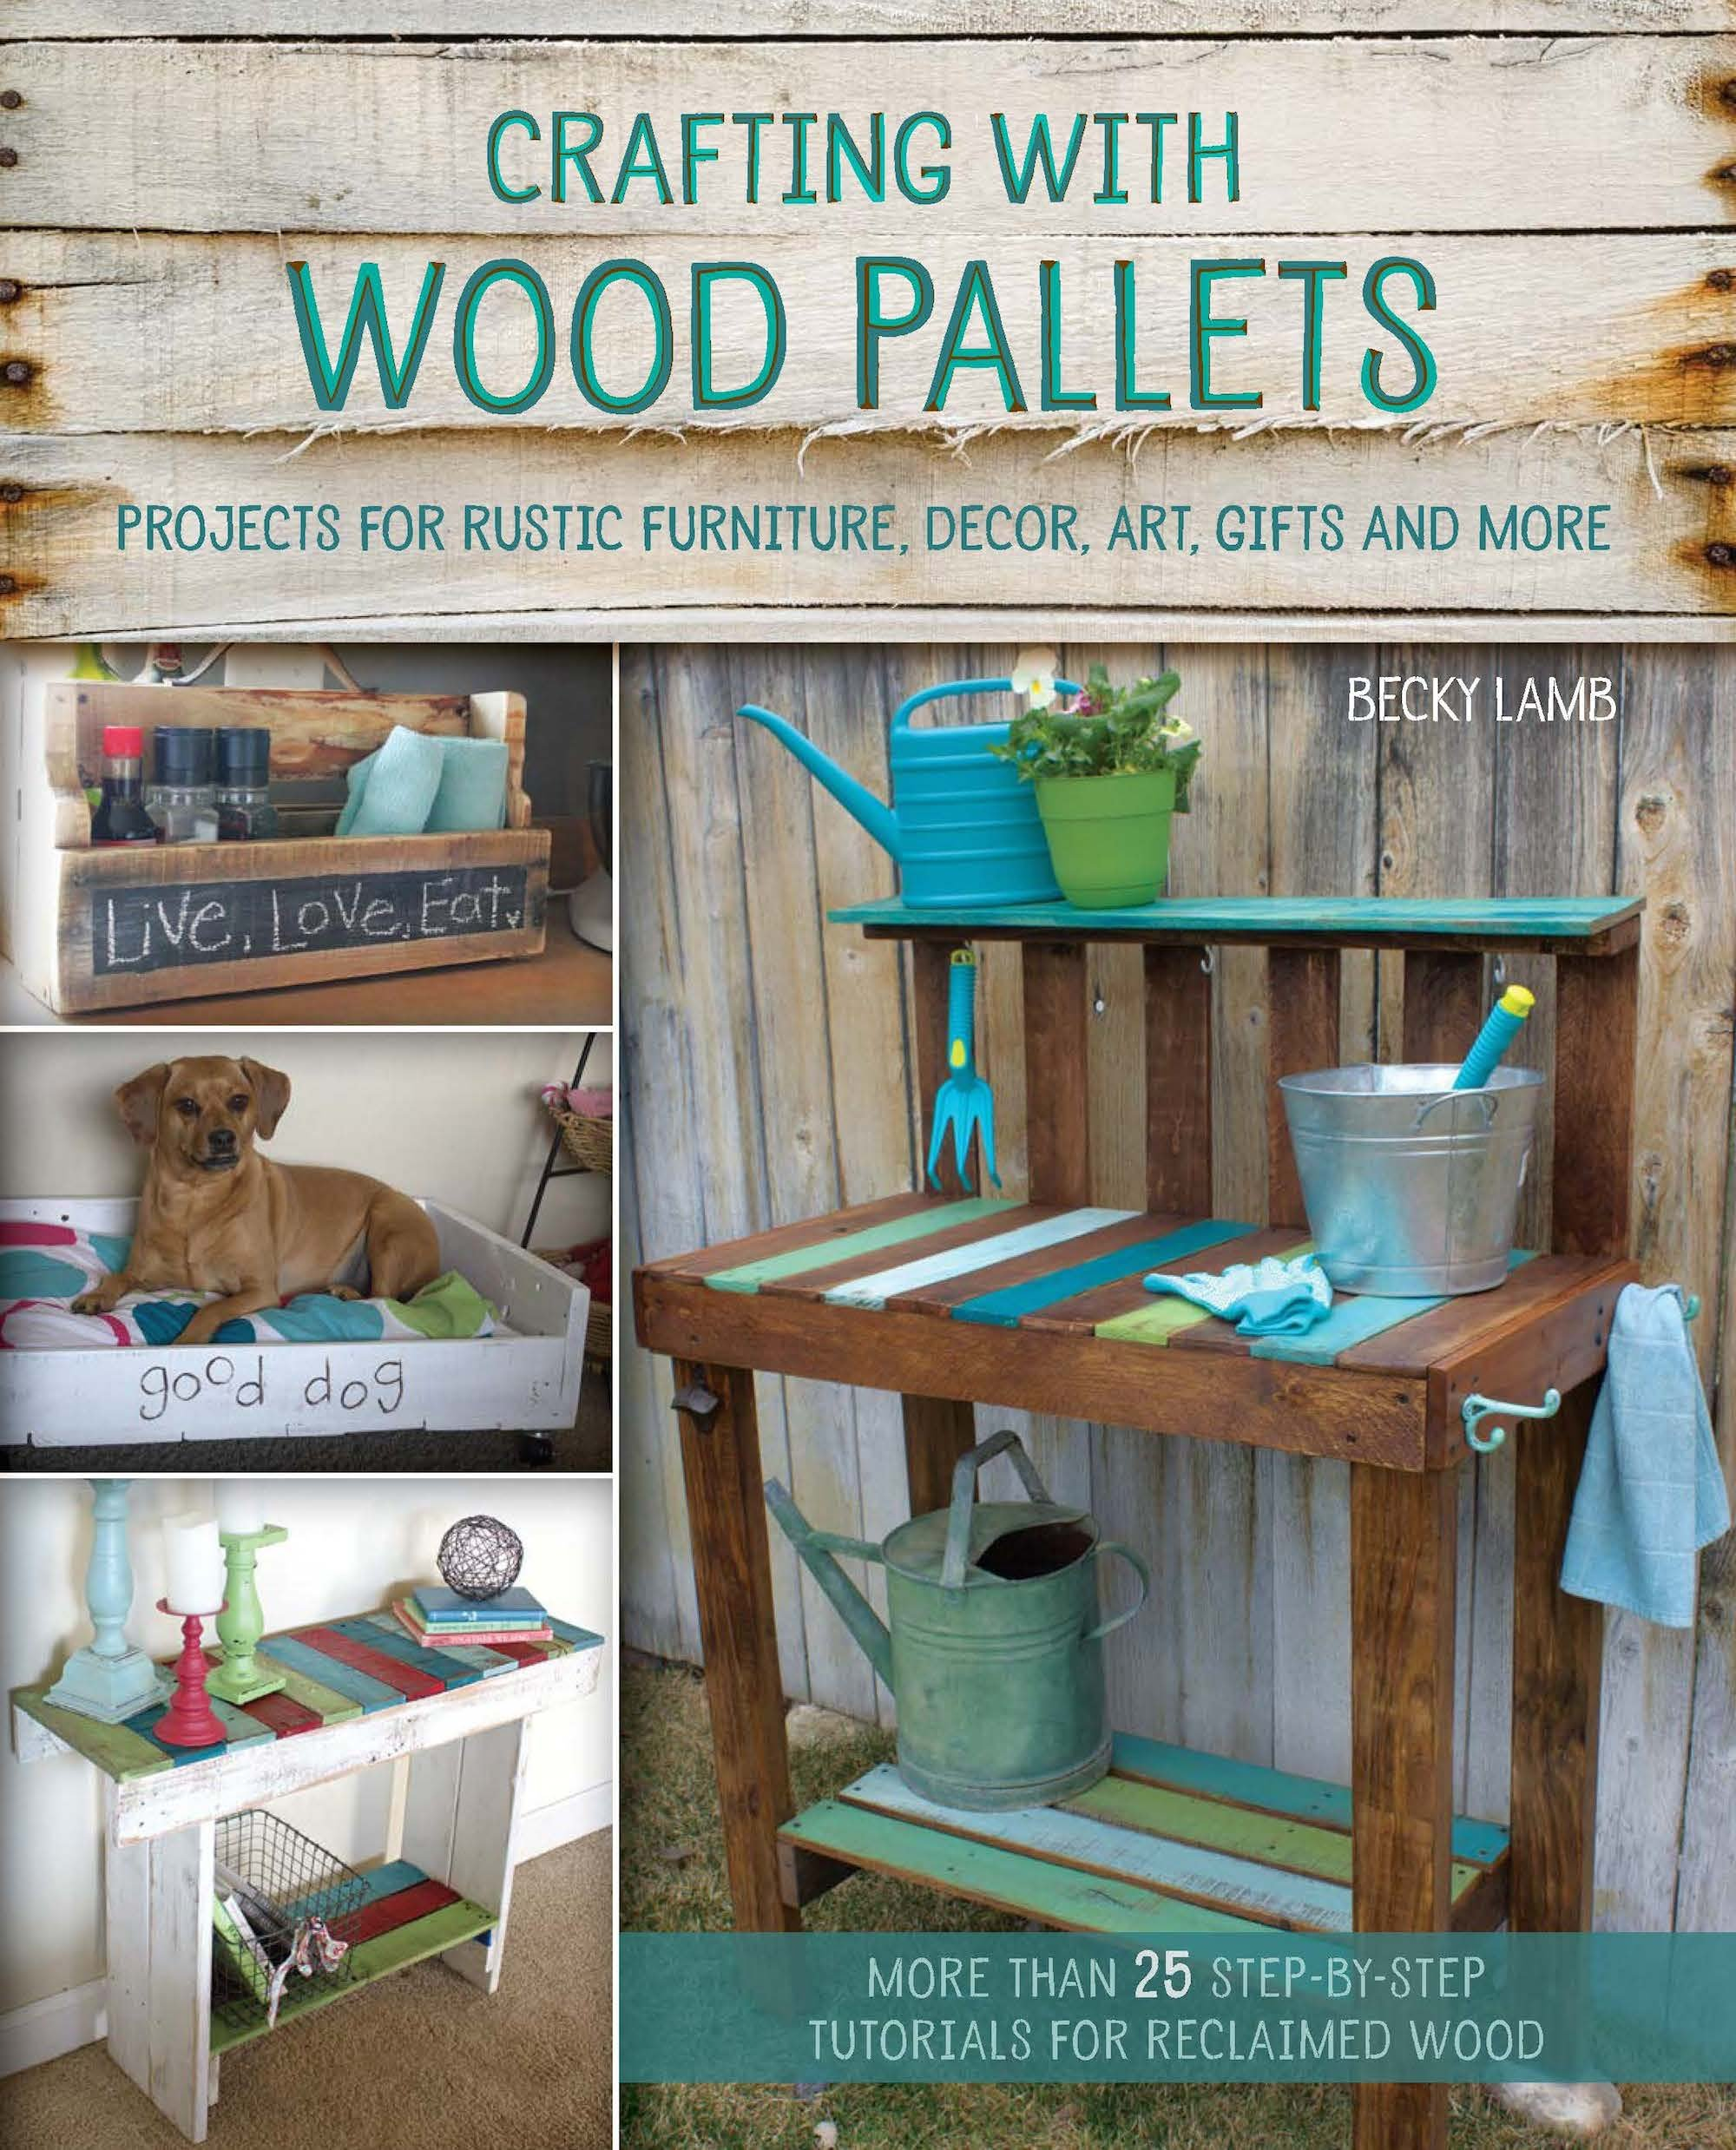 Furniture Made With Wood Pallets Recycled Follow The Author Netyeahinfo Crafting With Wood Pallets Projects For Rustic Furniture Decor